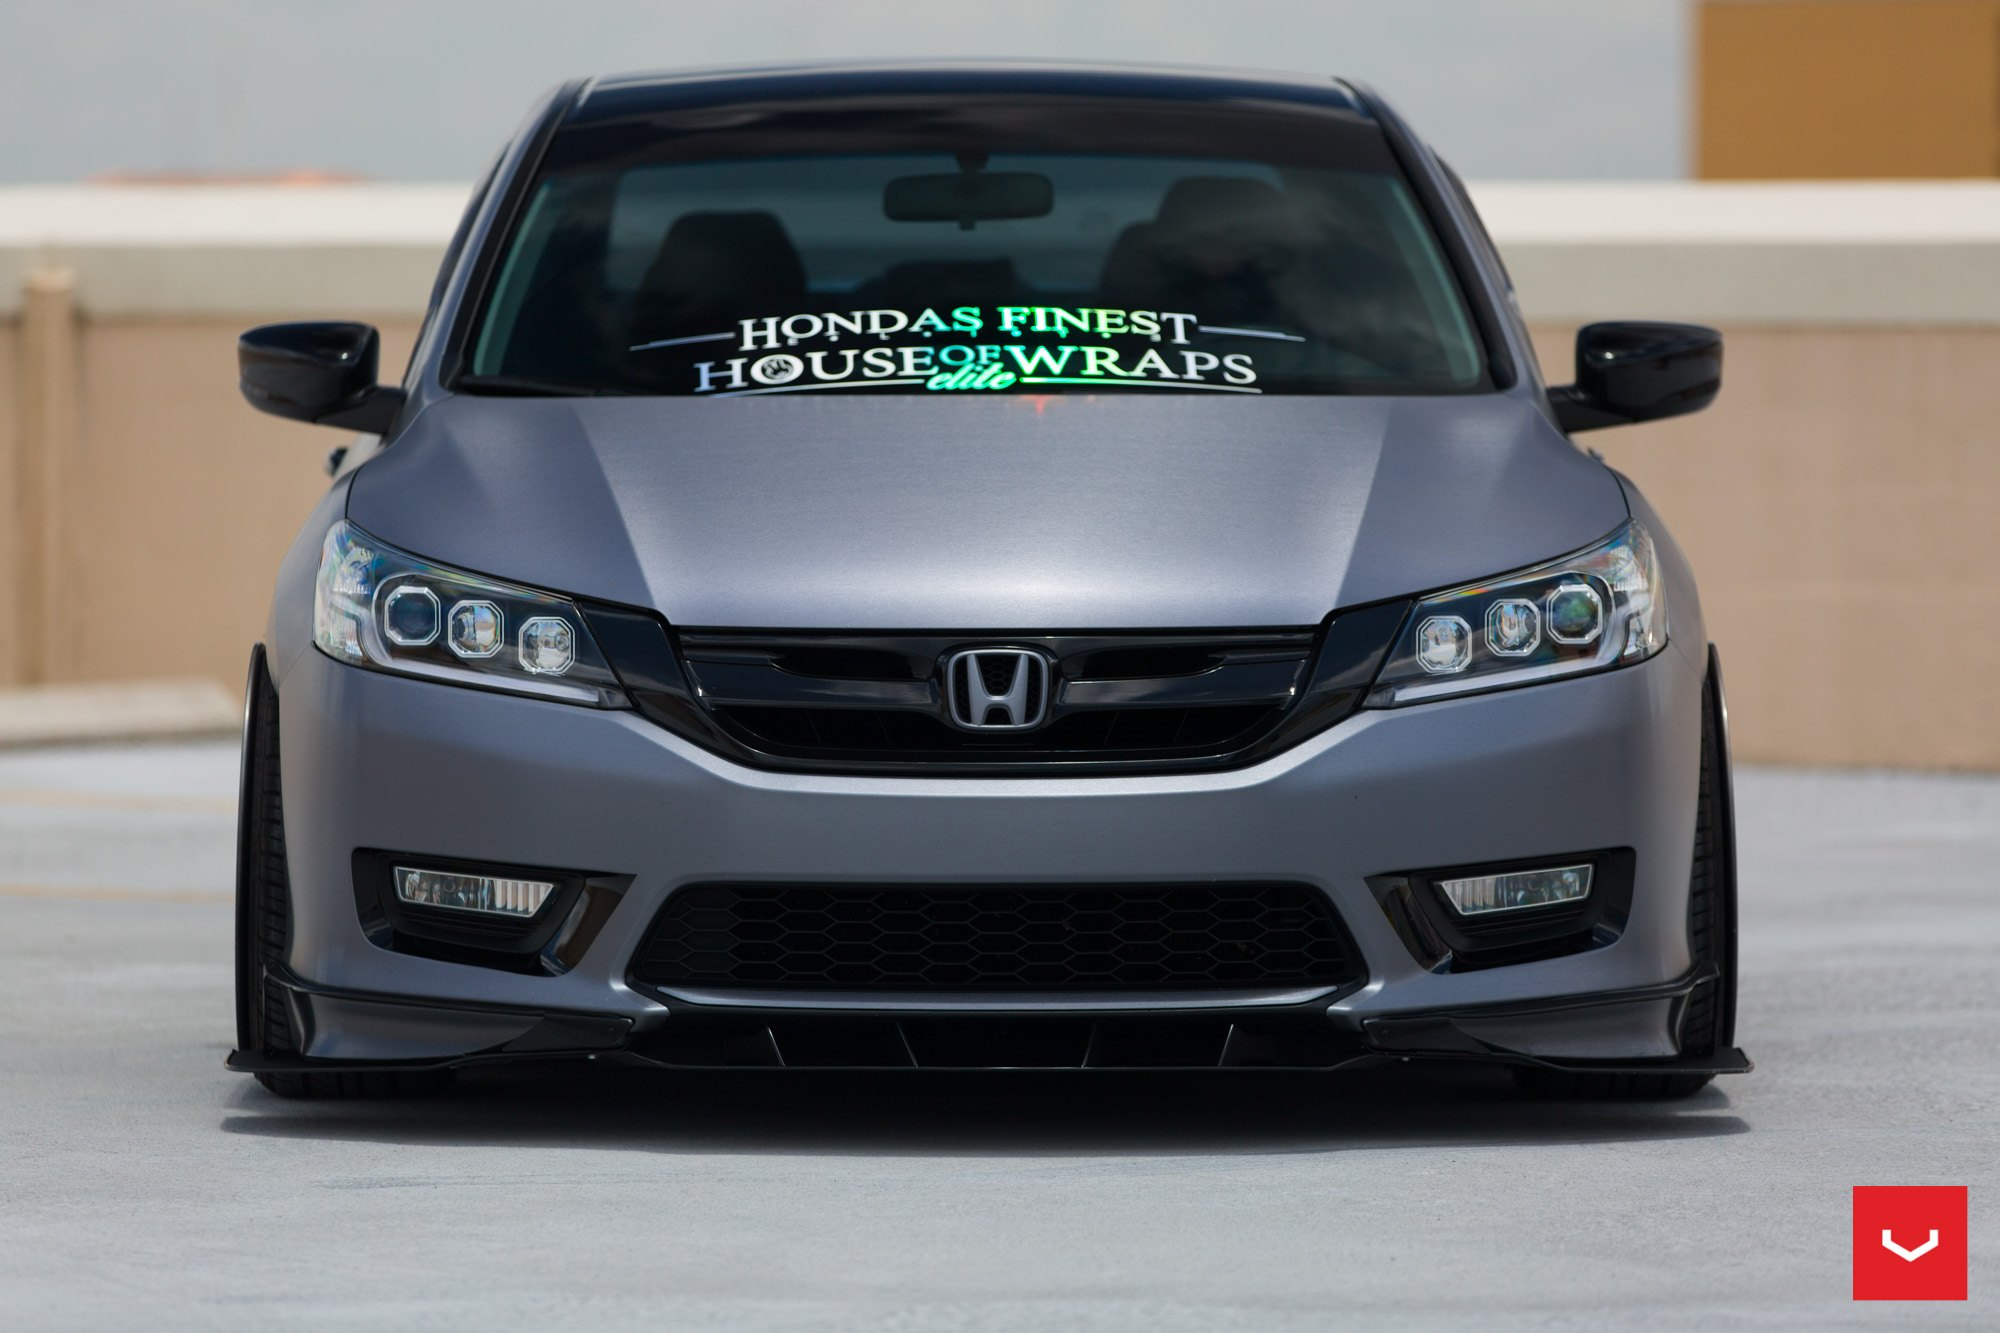 Custom Wrapped Honda Accord With Aftermarket Accessories